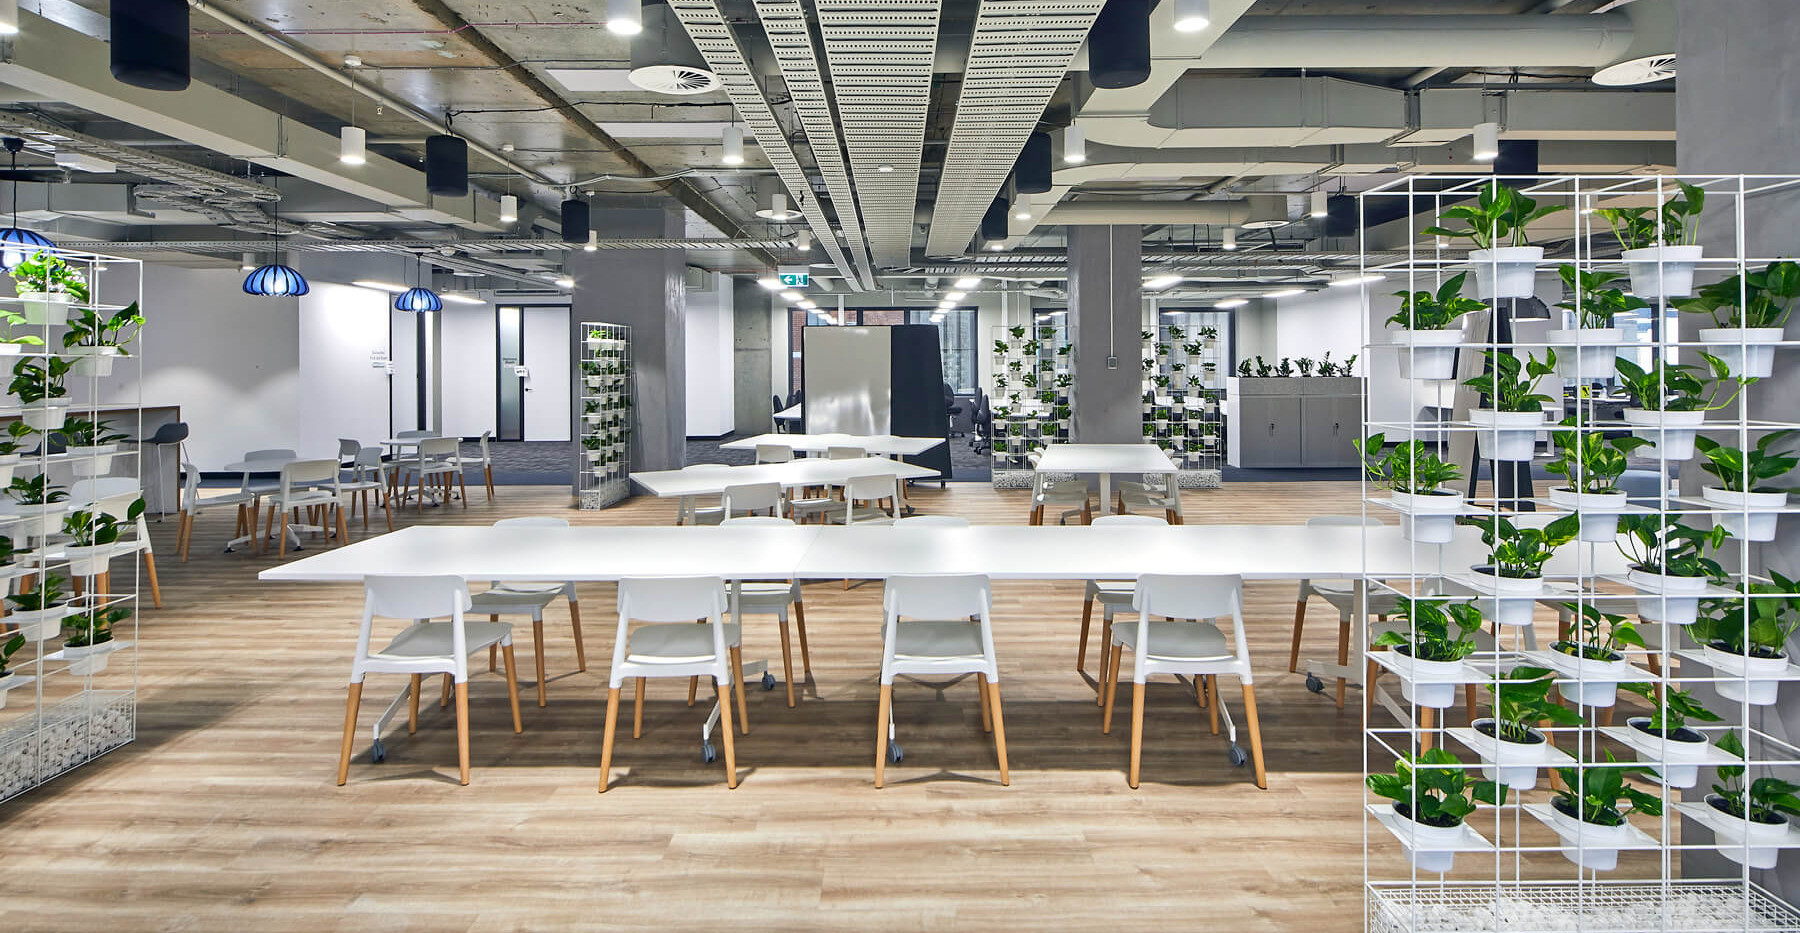 Renacent Healthdirect - Renacent Healthdirect - Interior Architecture